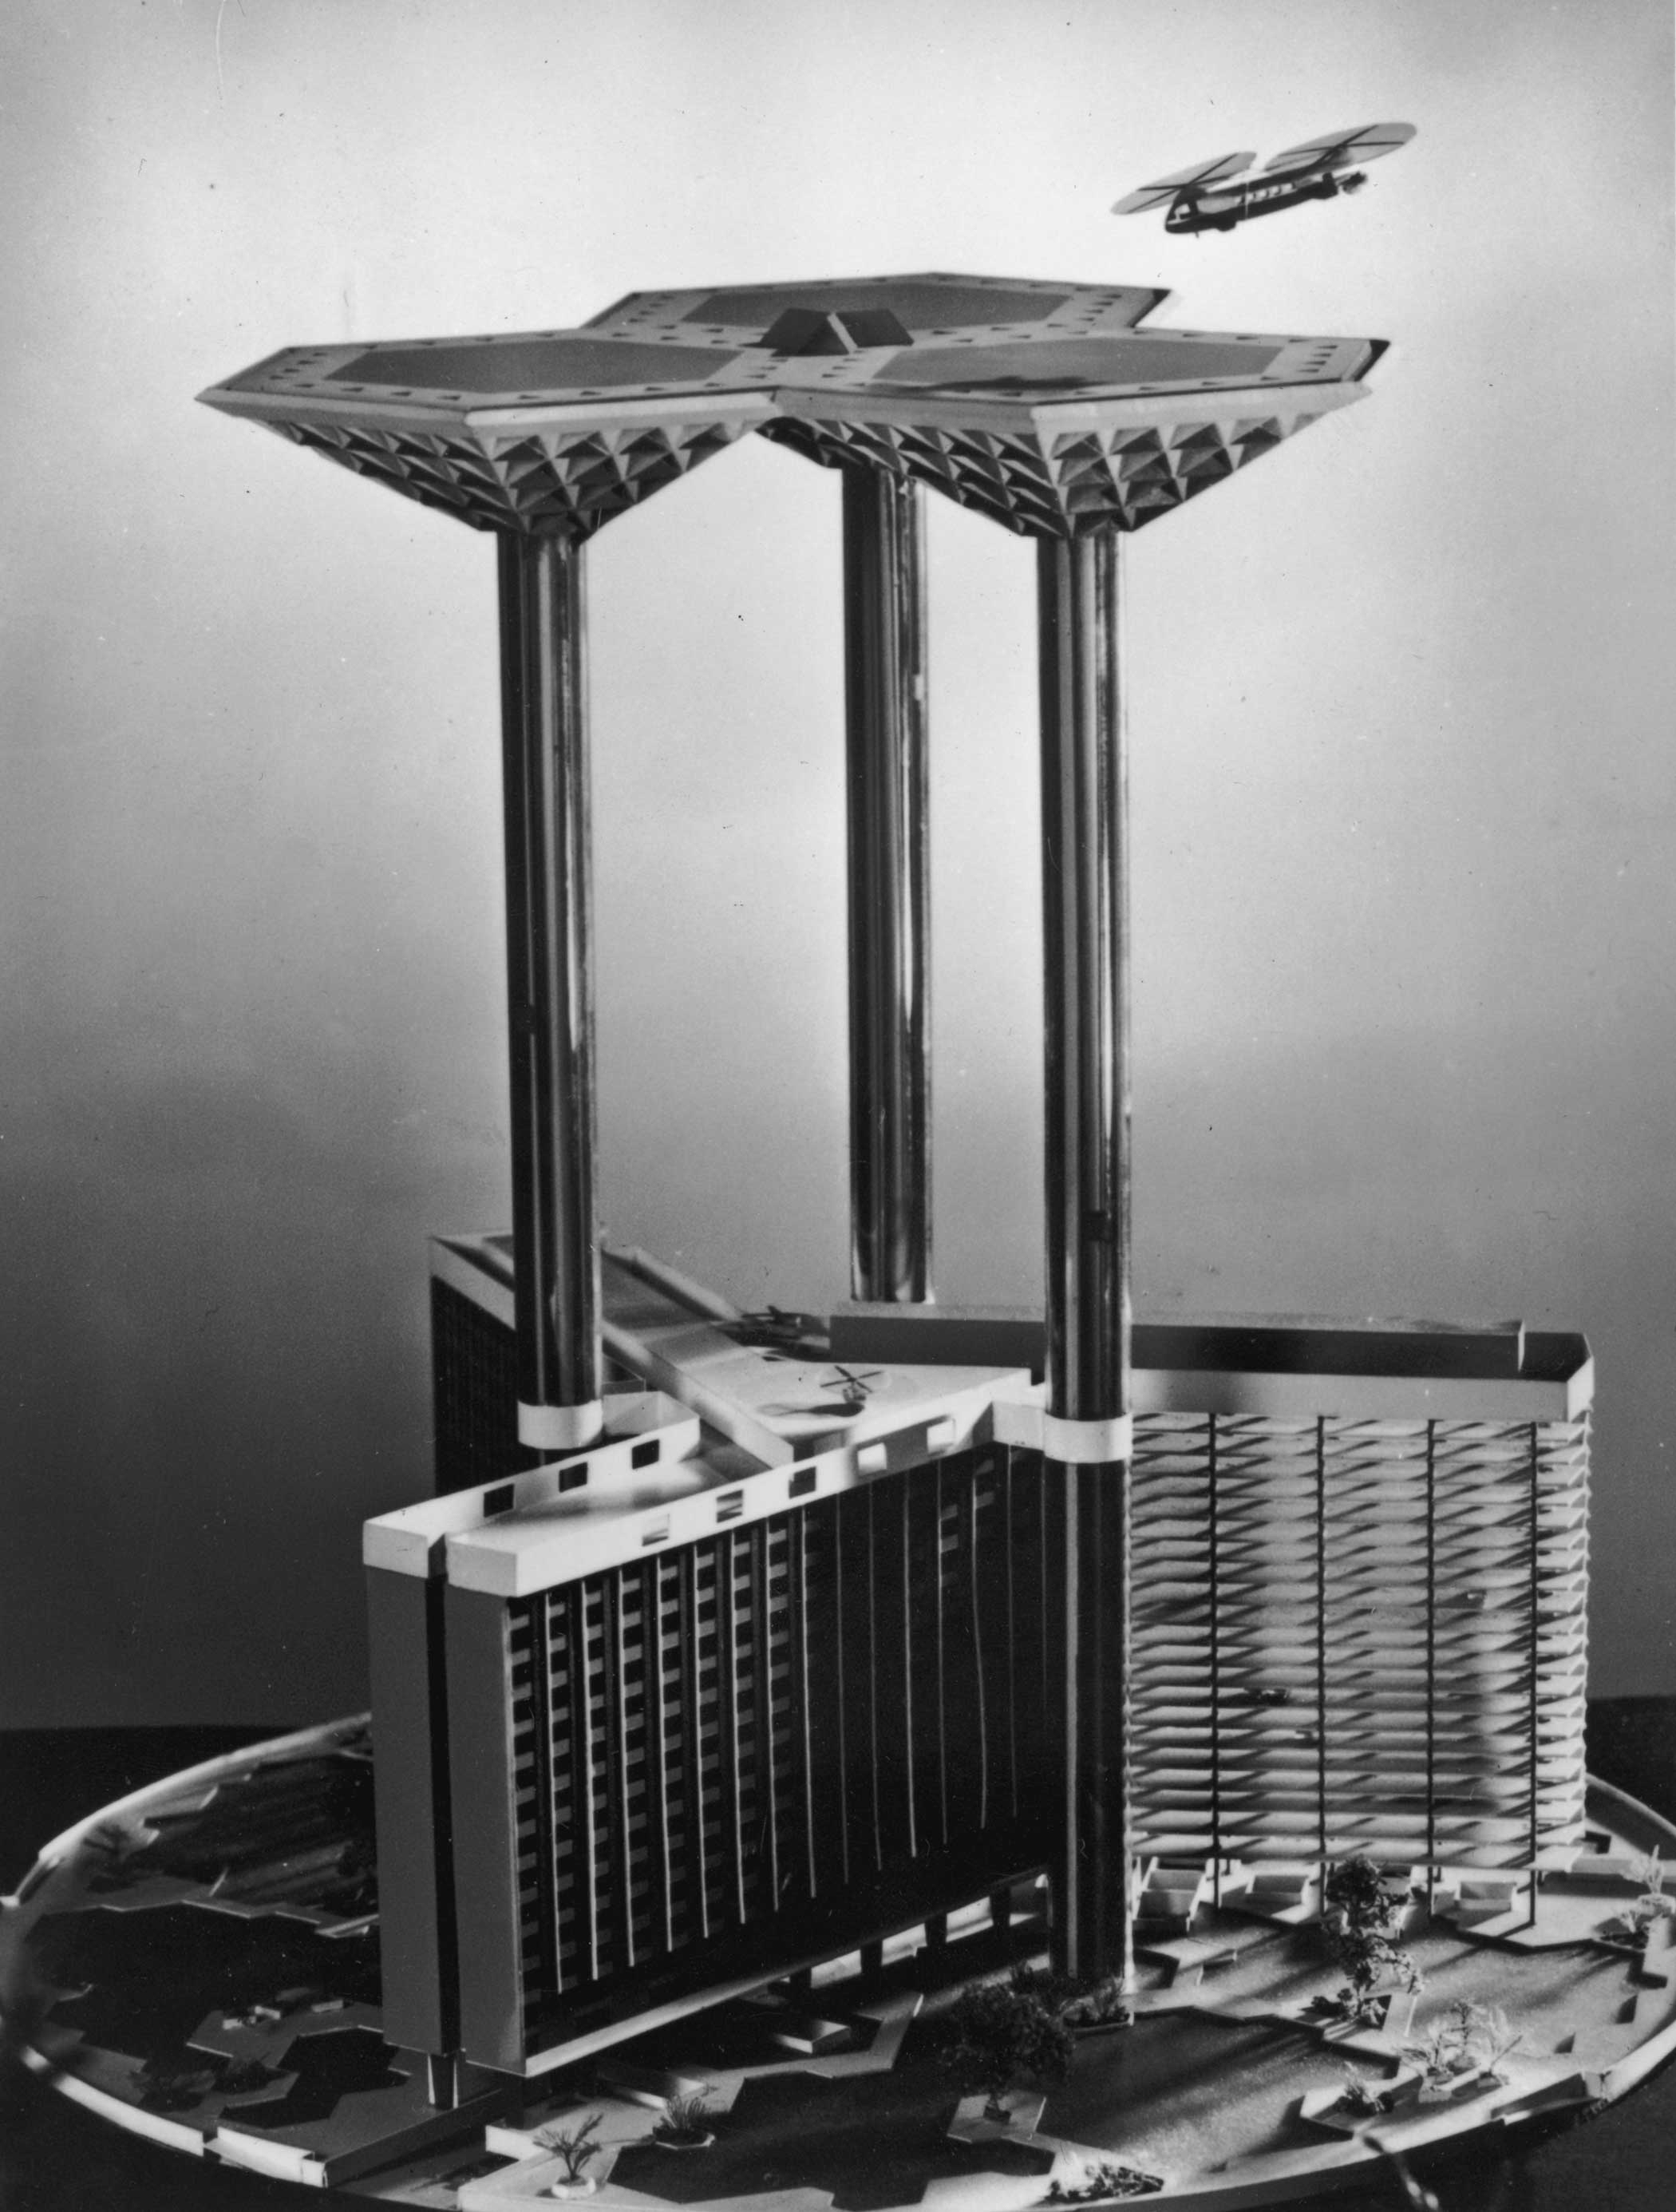 Architect James Dartford designed this model of 'Skyport 2000', a futuristic proposal for an airport in the year 2000. The model shows how aircraft could land and take off from a giant platform supported by three glass-clad pillars. These would contain lifts carrying passengers down to a hotel, offices, and parking for private planes and cars.